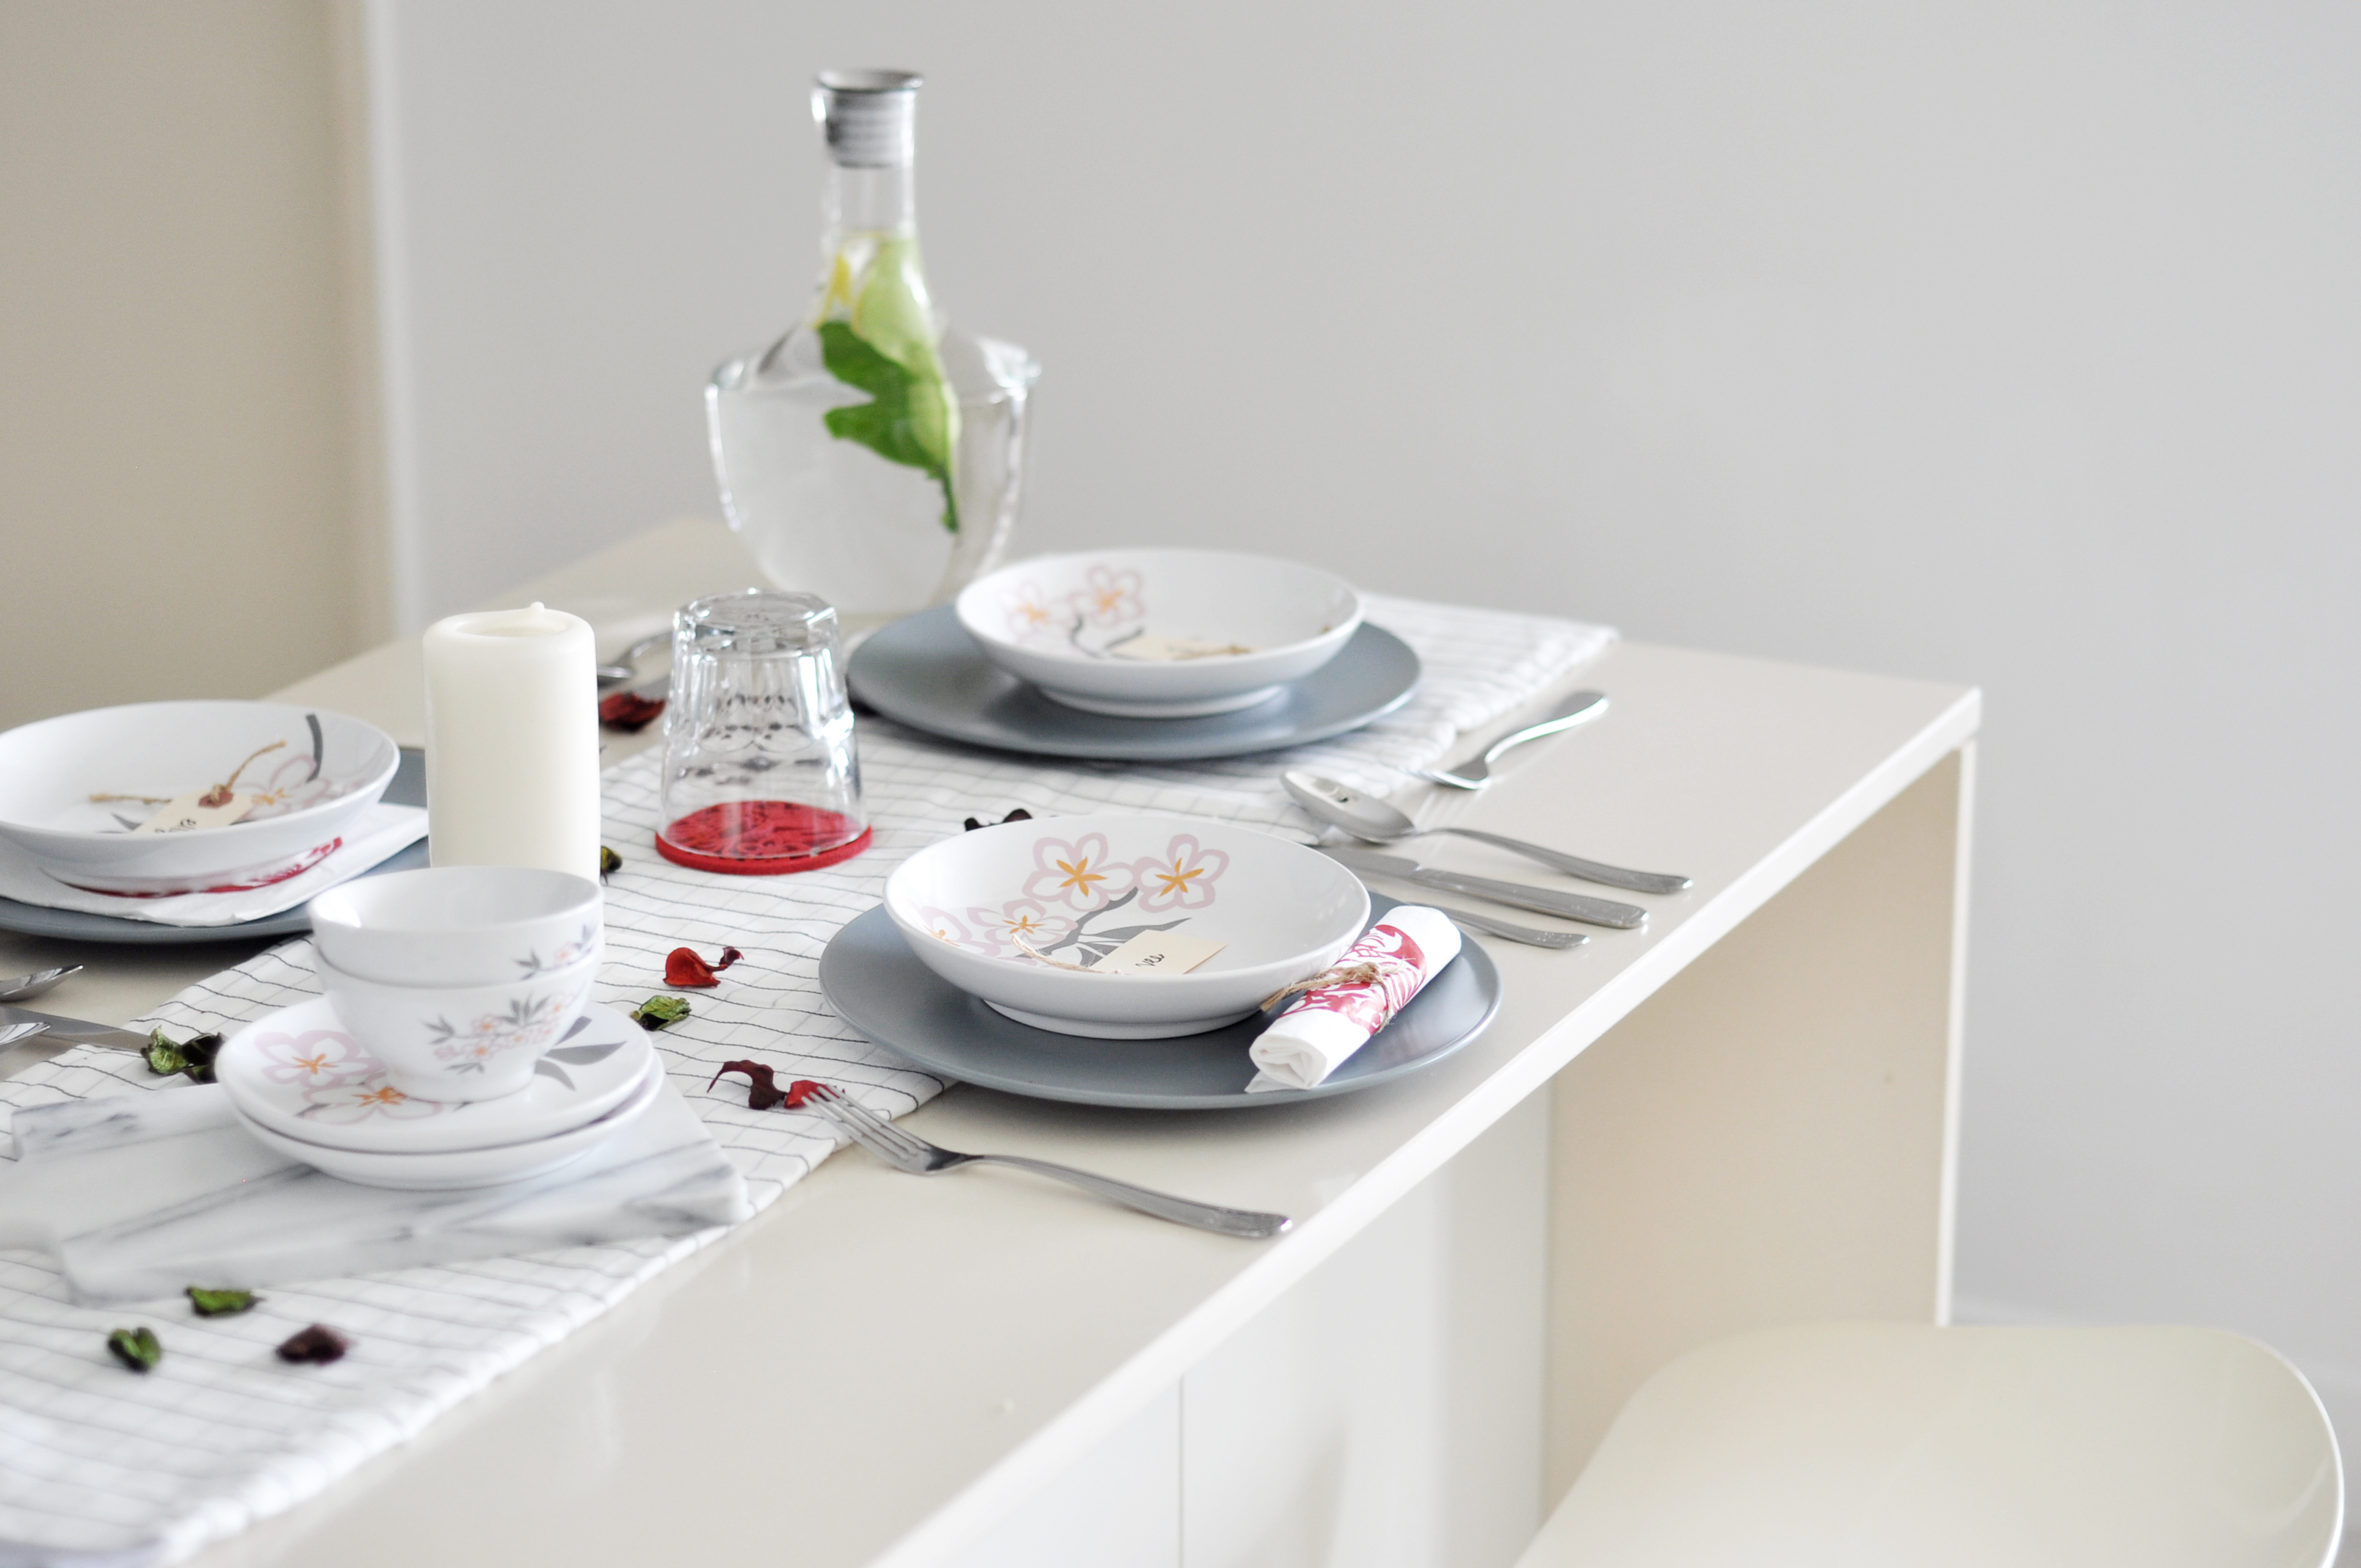 Living] Simple home ideas with IKEA this Chinese New Year – vickii ...